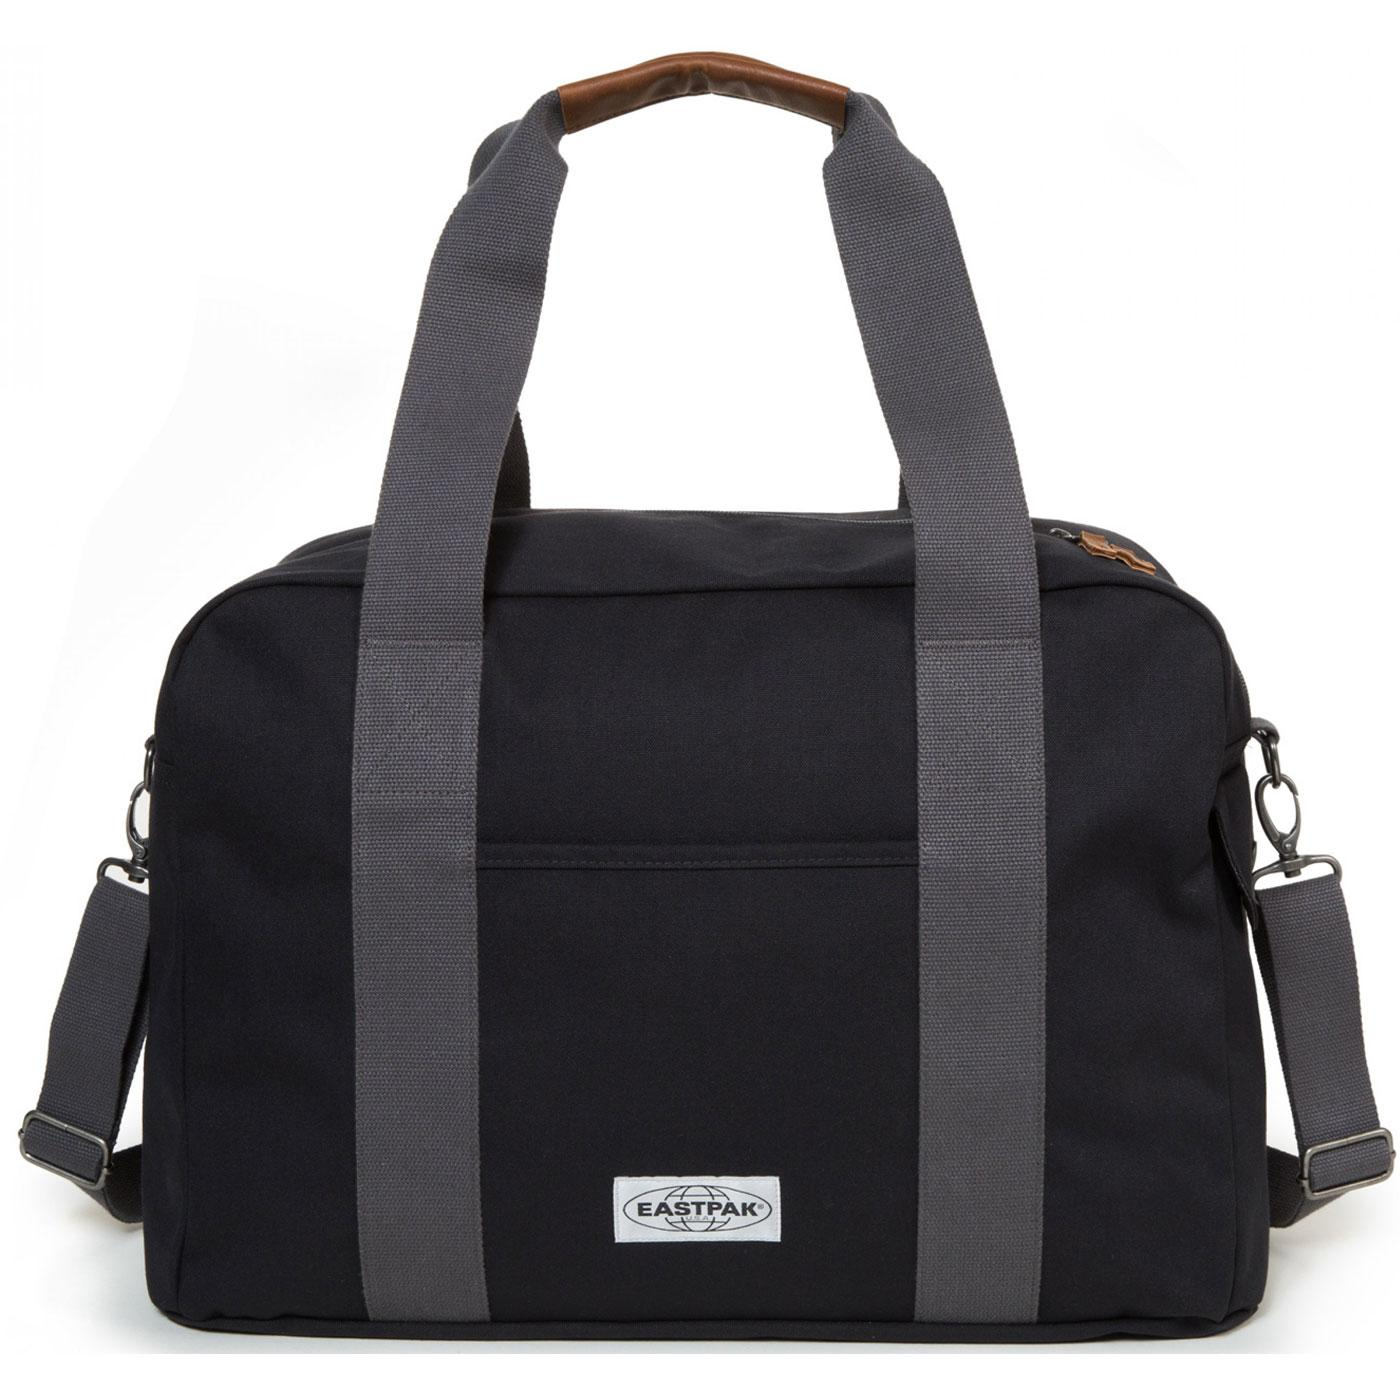 Deve EASTPAK Premium Opgrade Dark Laptop Holdall